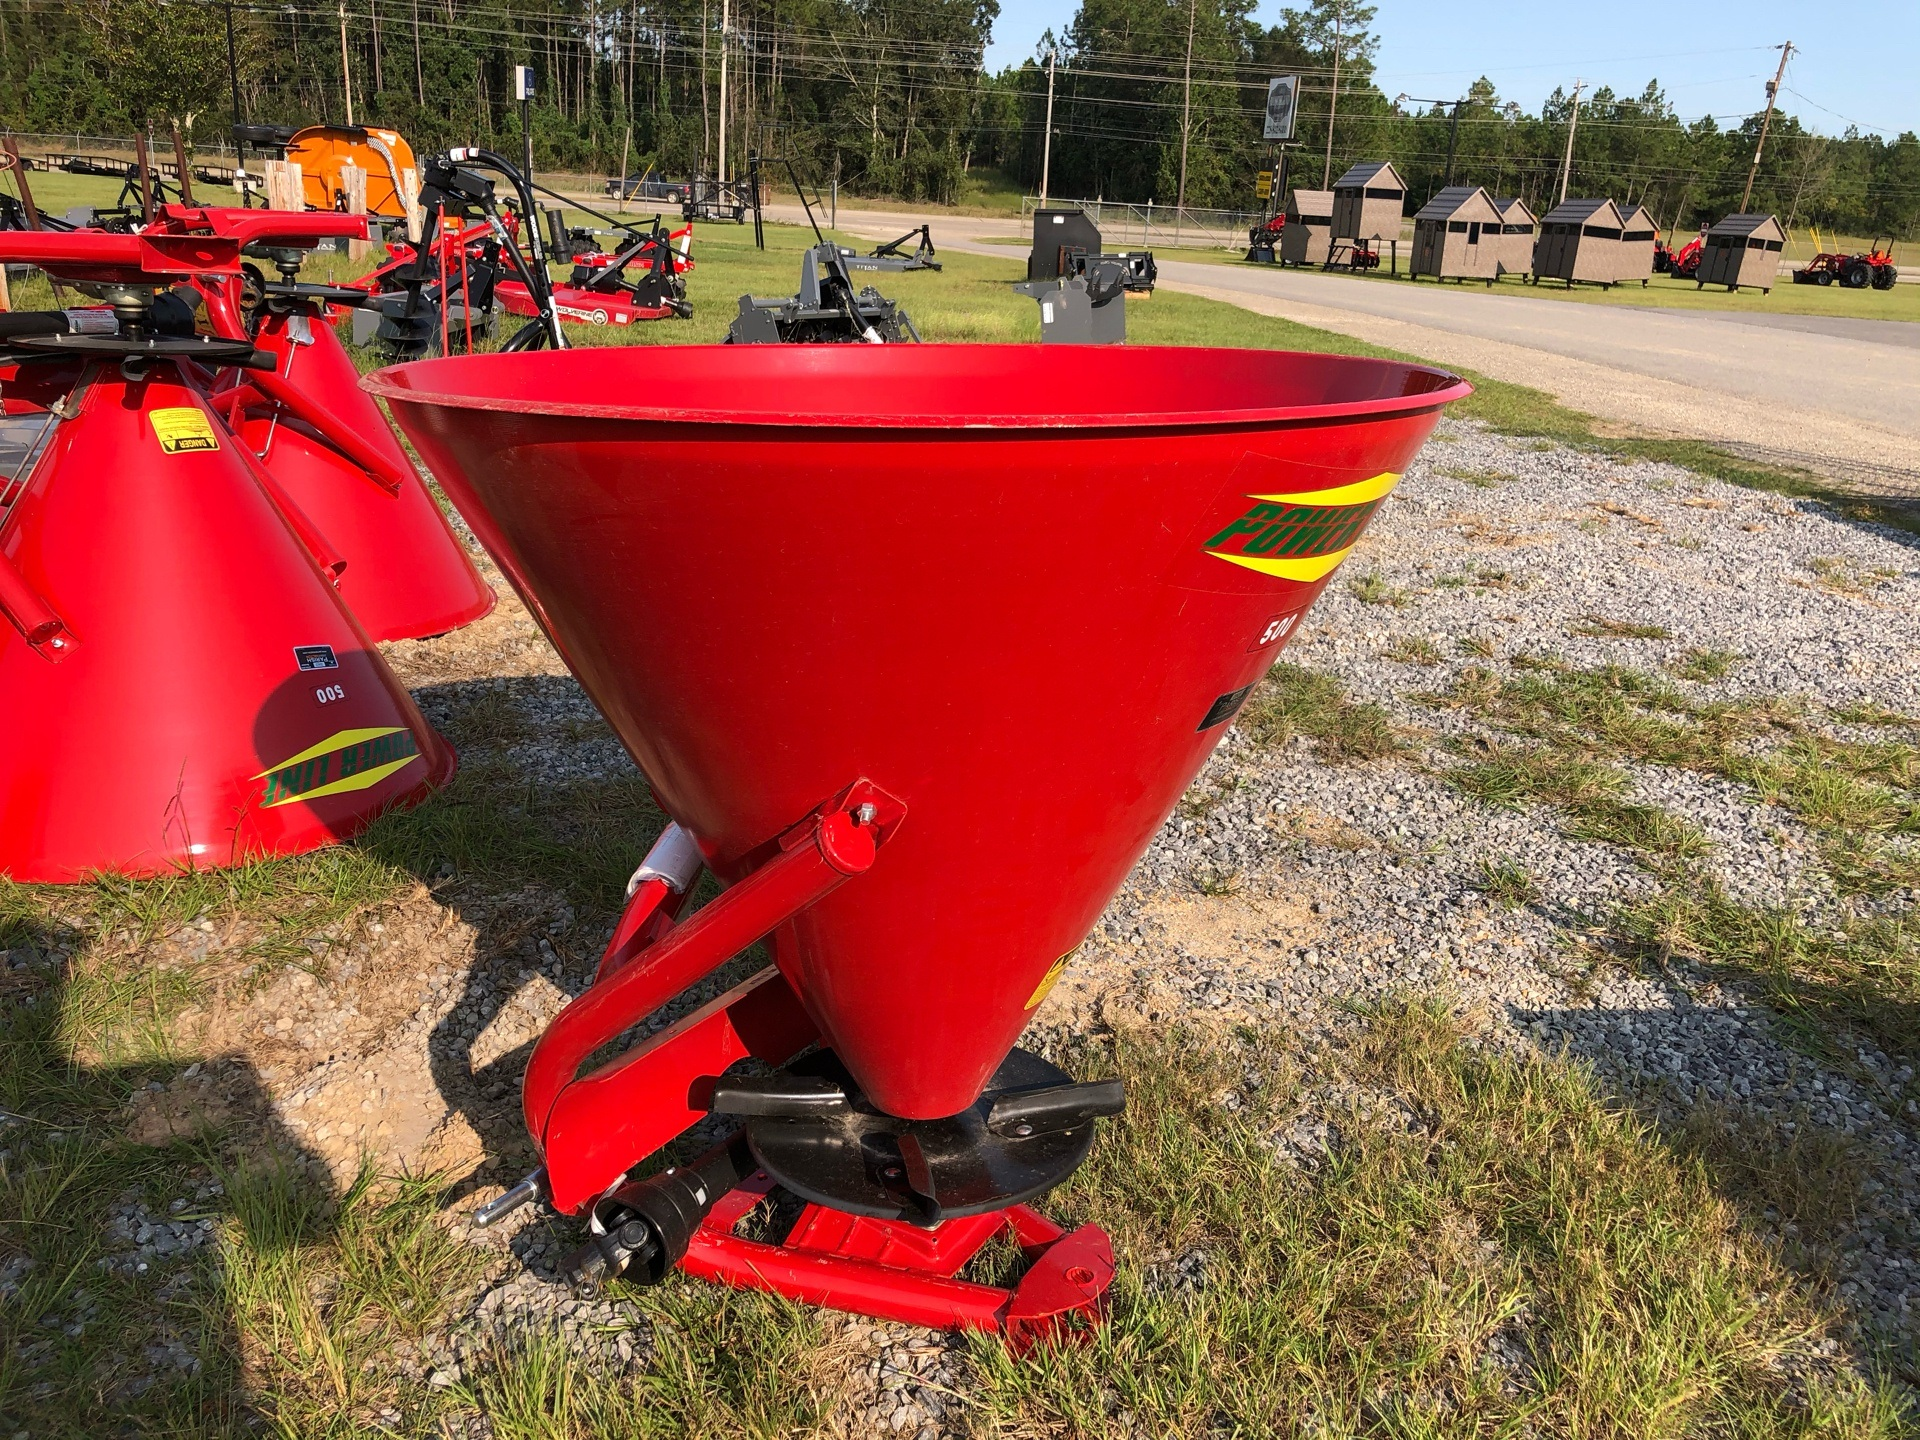 2020 Ranchland Implements Cosmo Spreader 750lbs Capacity in Saucier, Mississippi - Photo 7